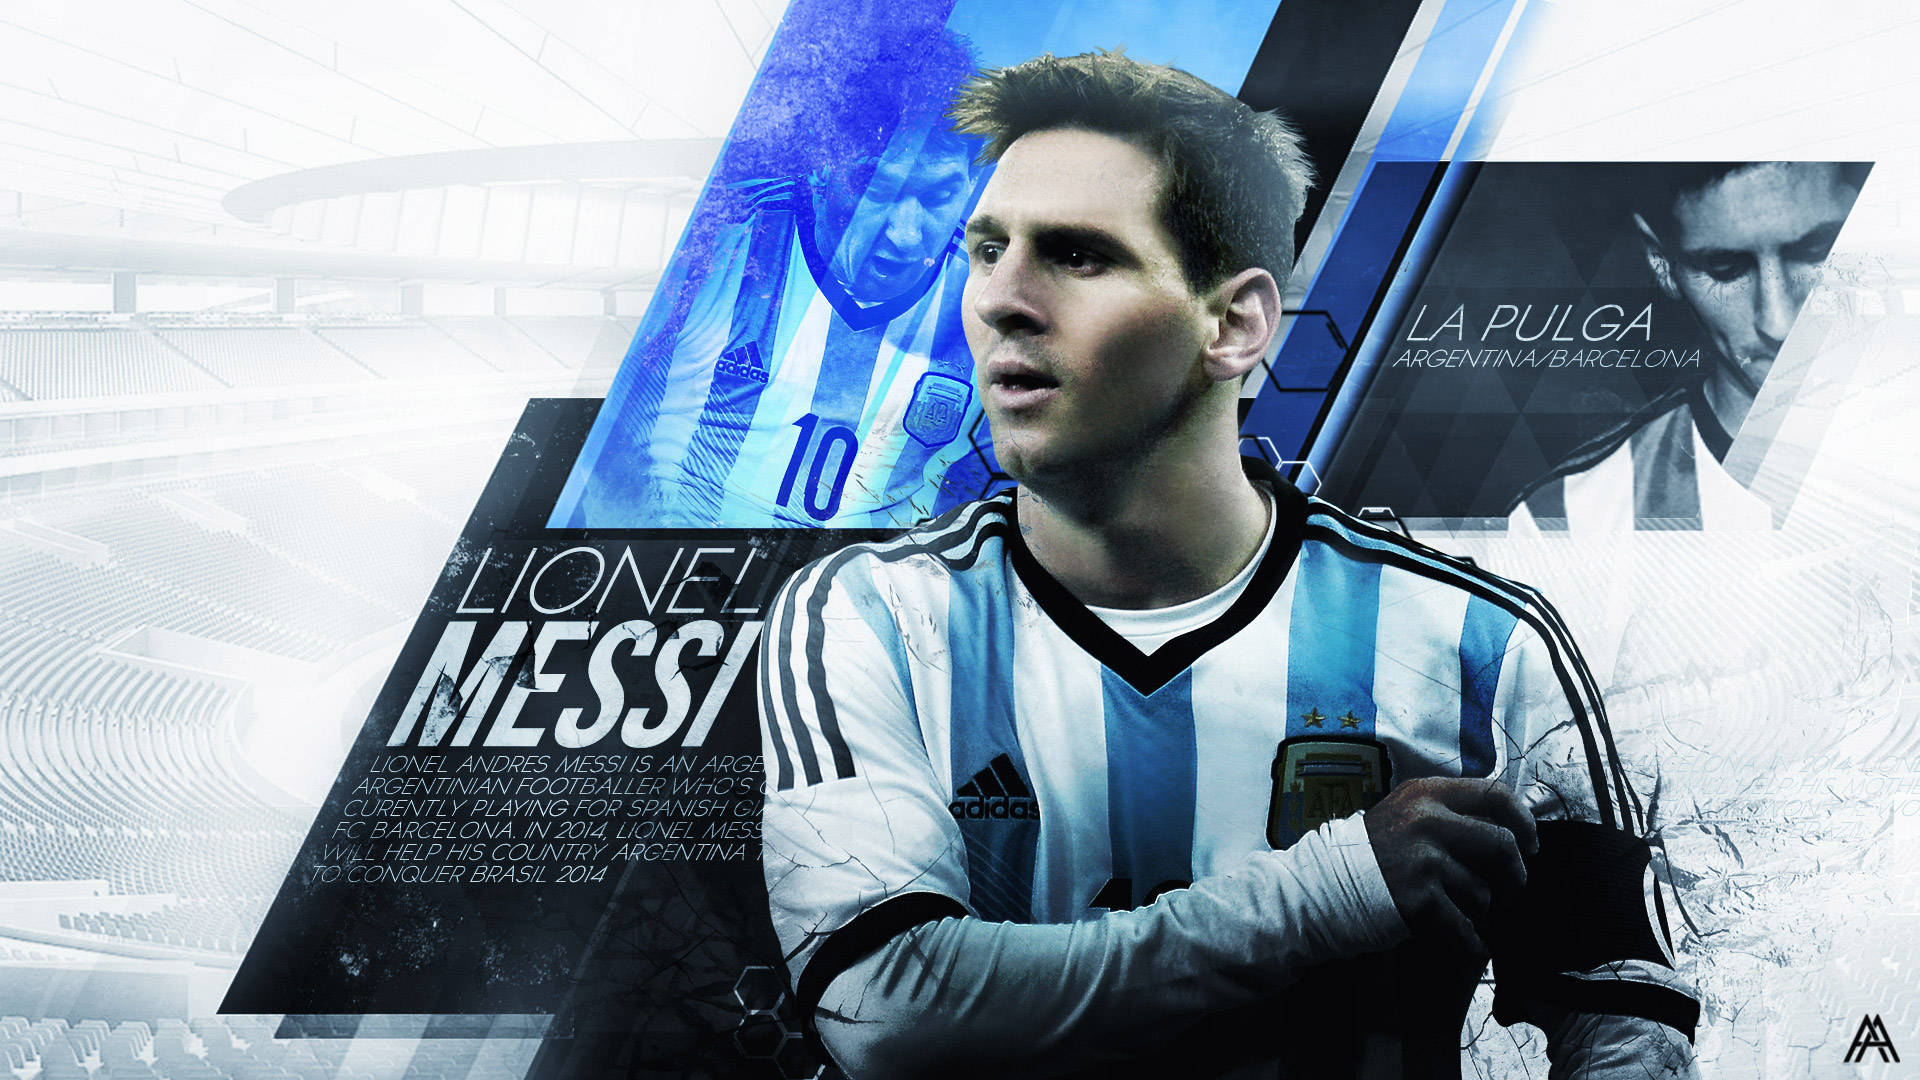 messi argentina   wallpaper hd desktop html lionel messi